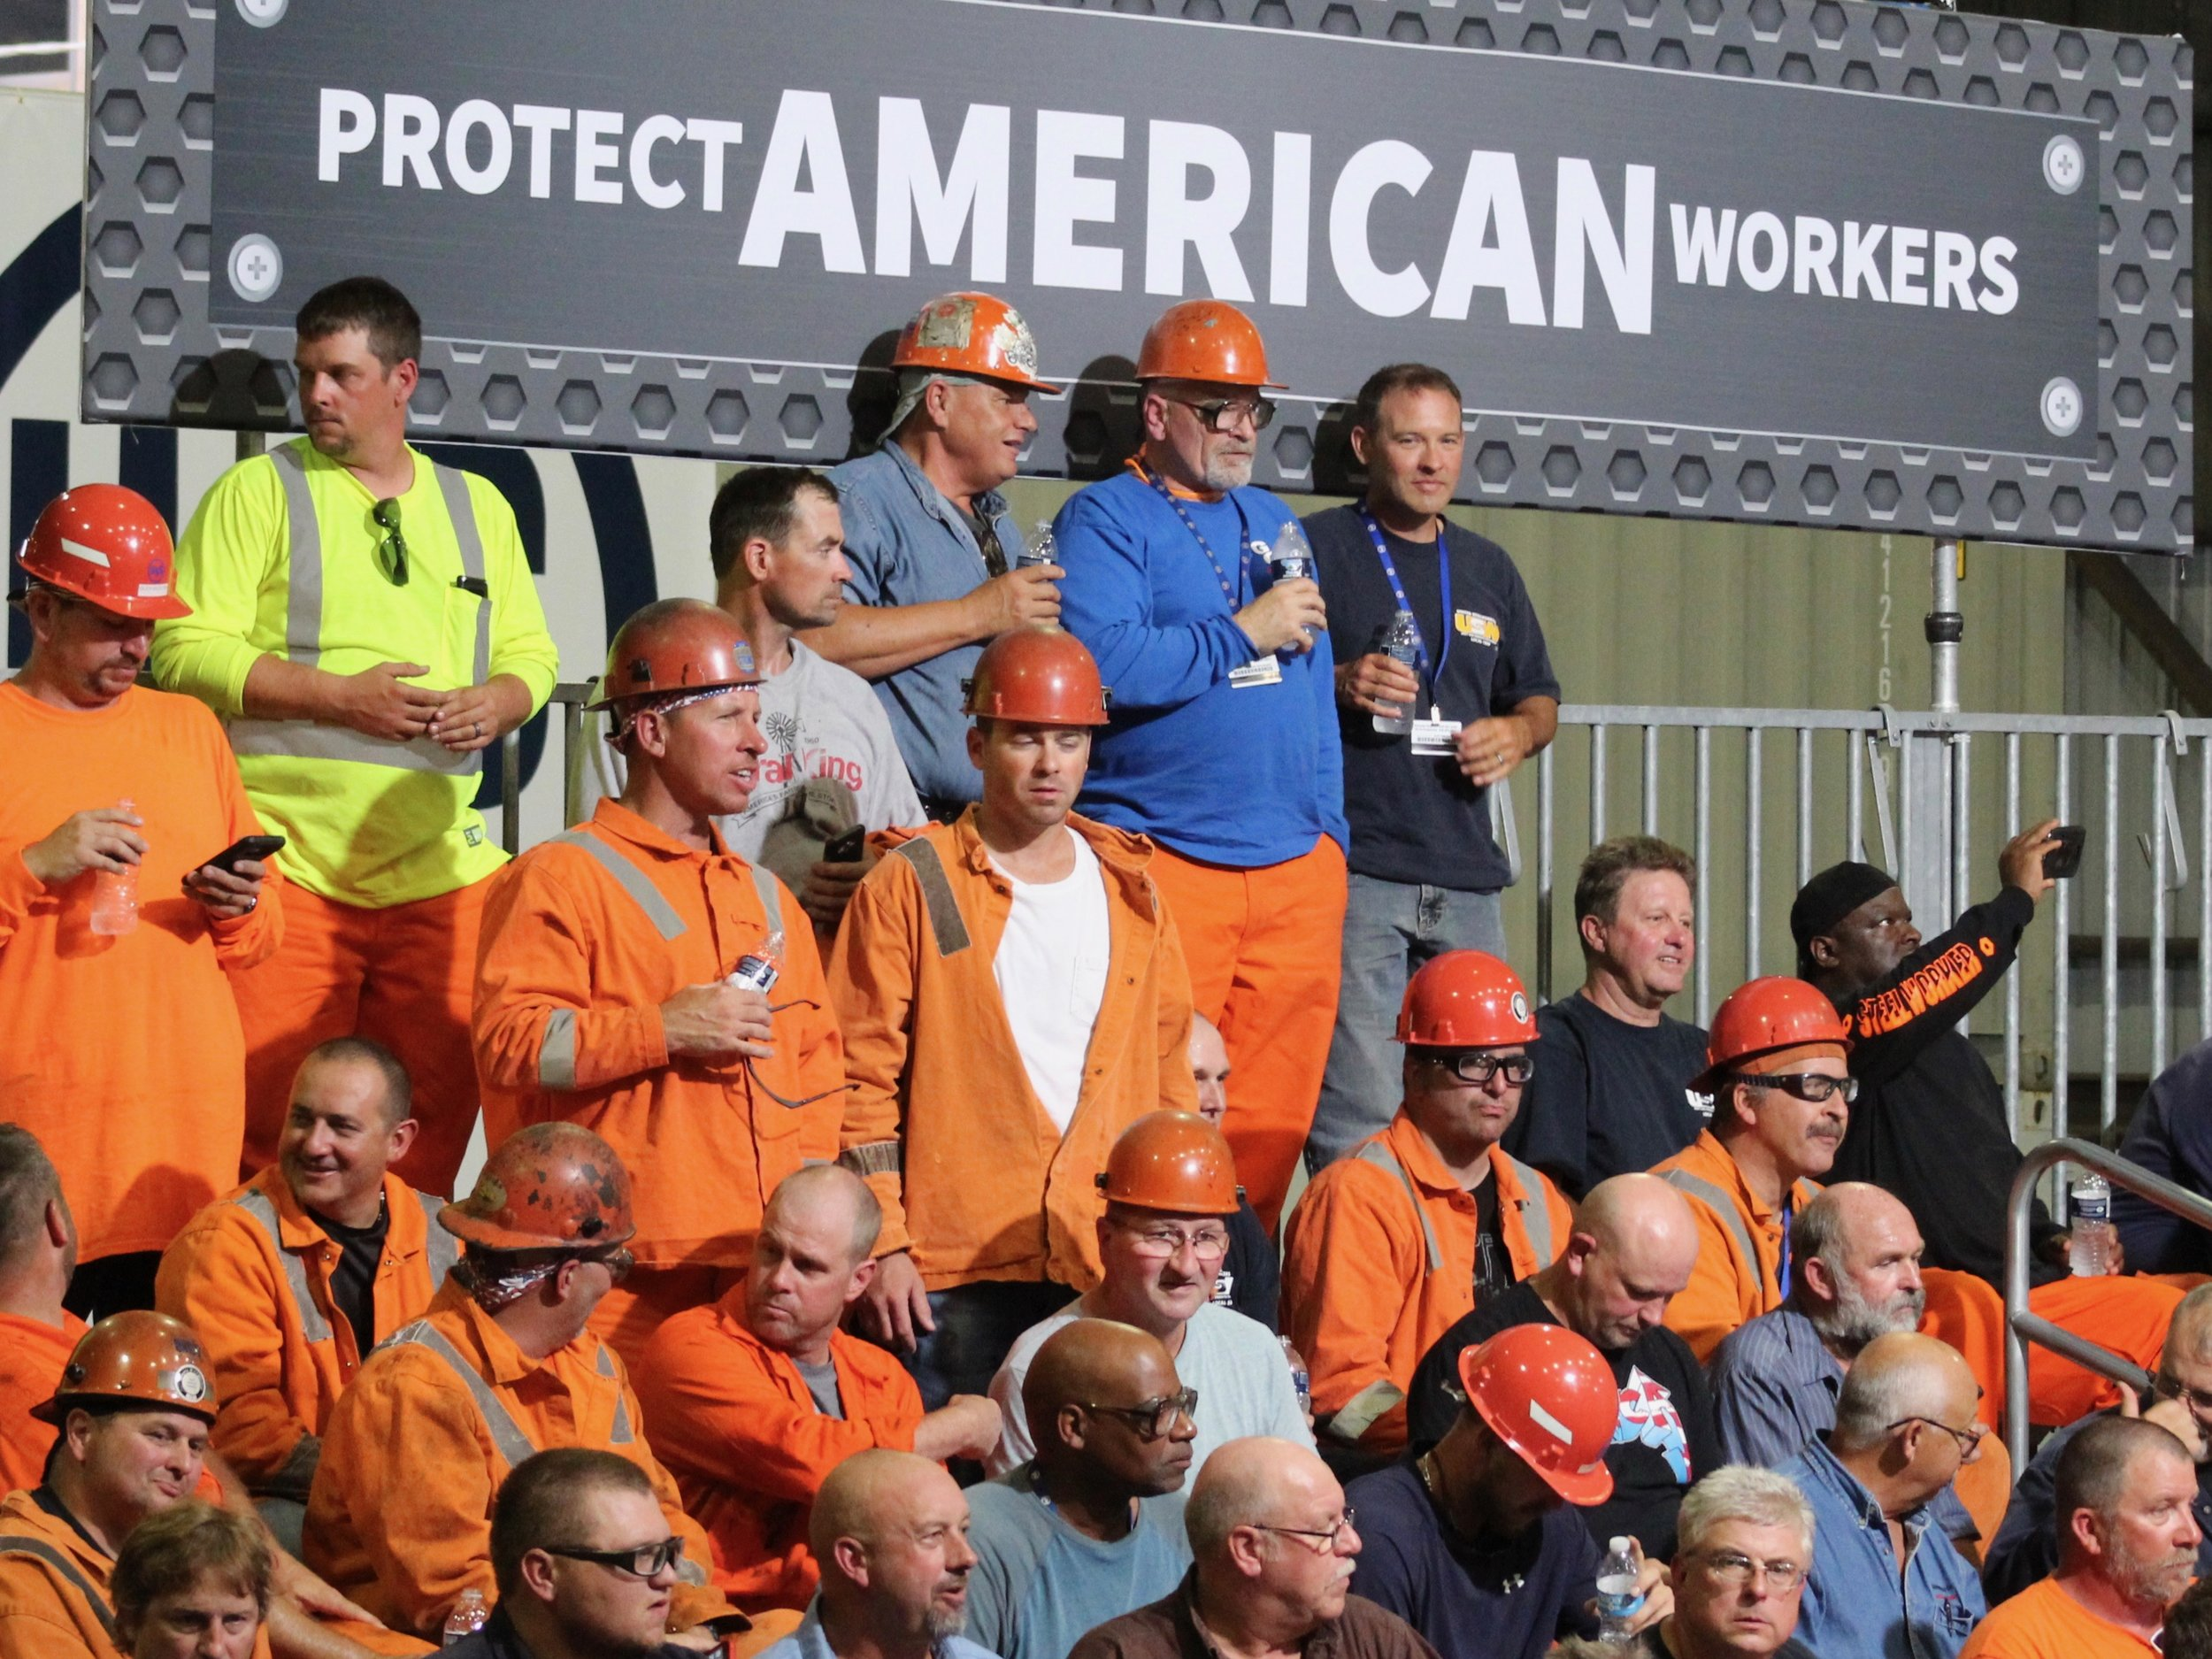 Members of the United Steelworkers union await President Trump on his visit to the U.S. Steel Granite City Works earlier this summer. (One Illinois/Ted Cox)